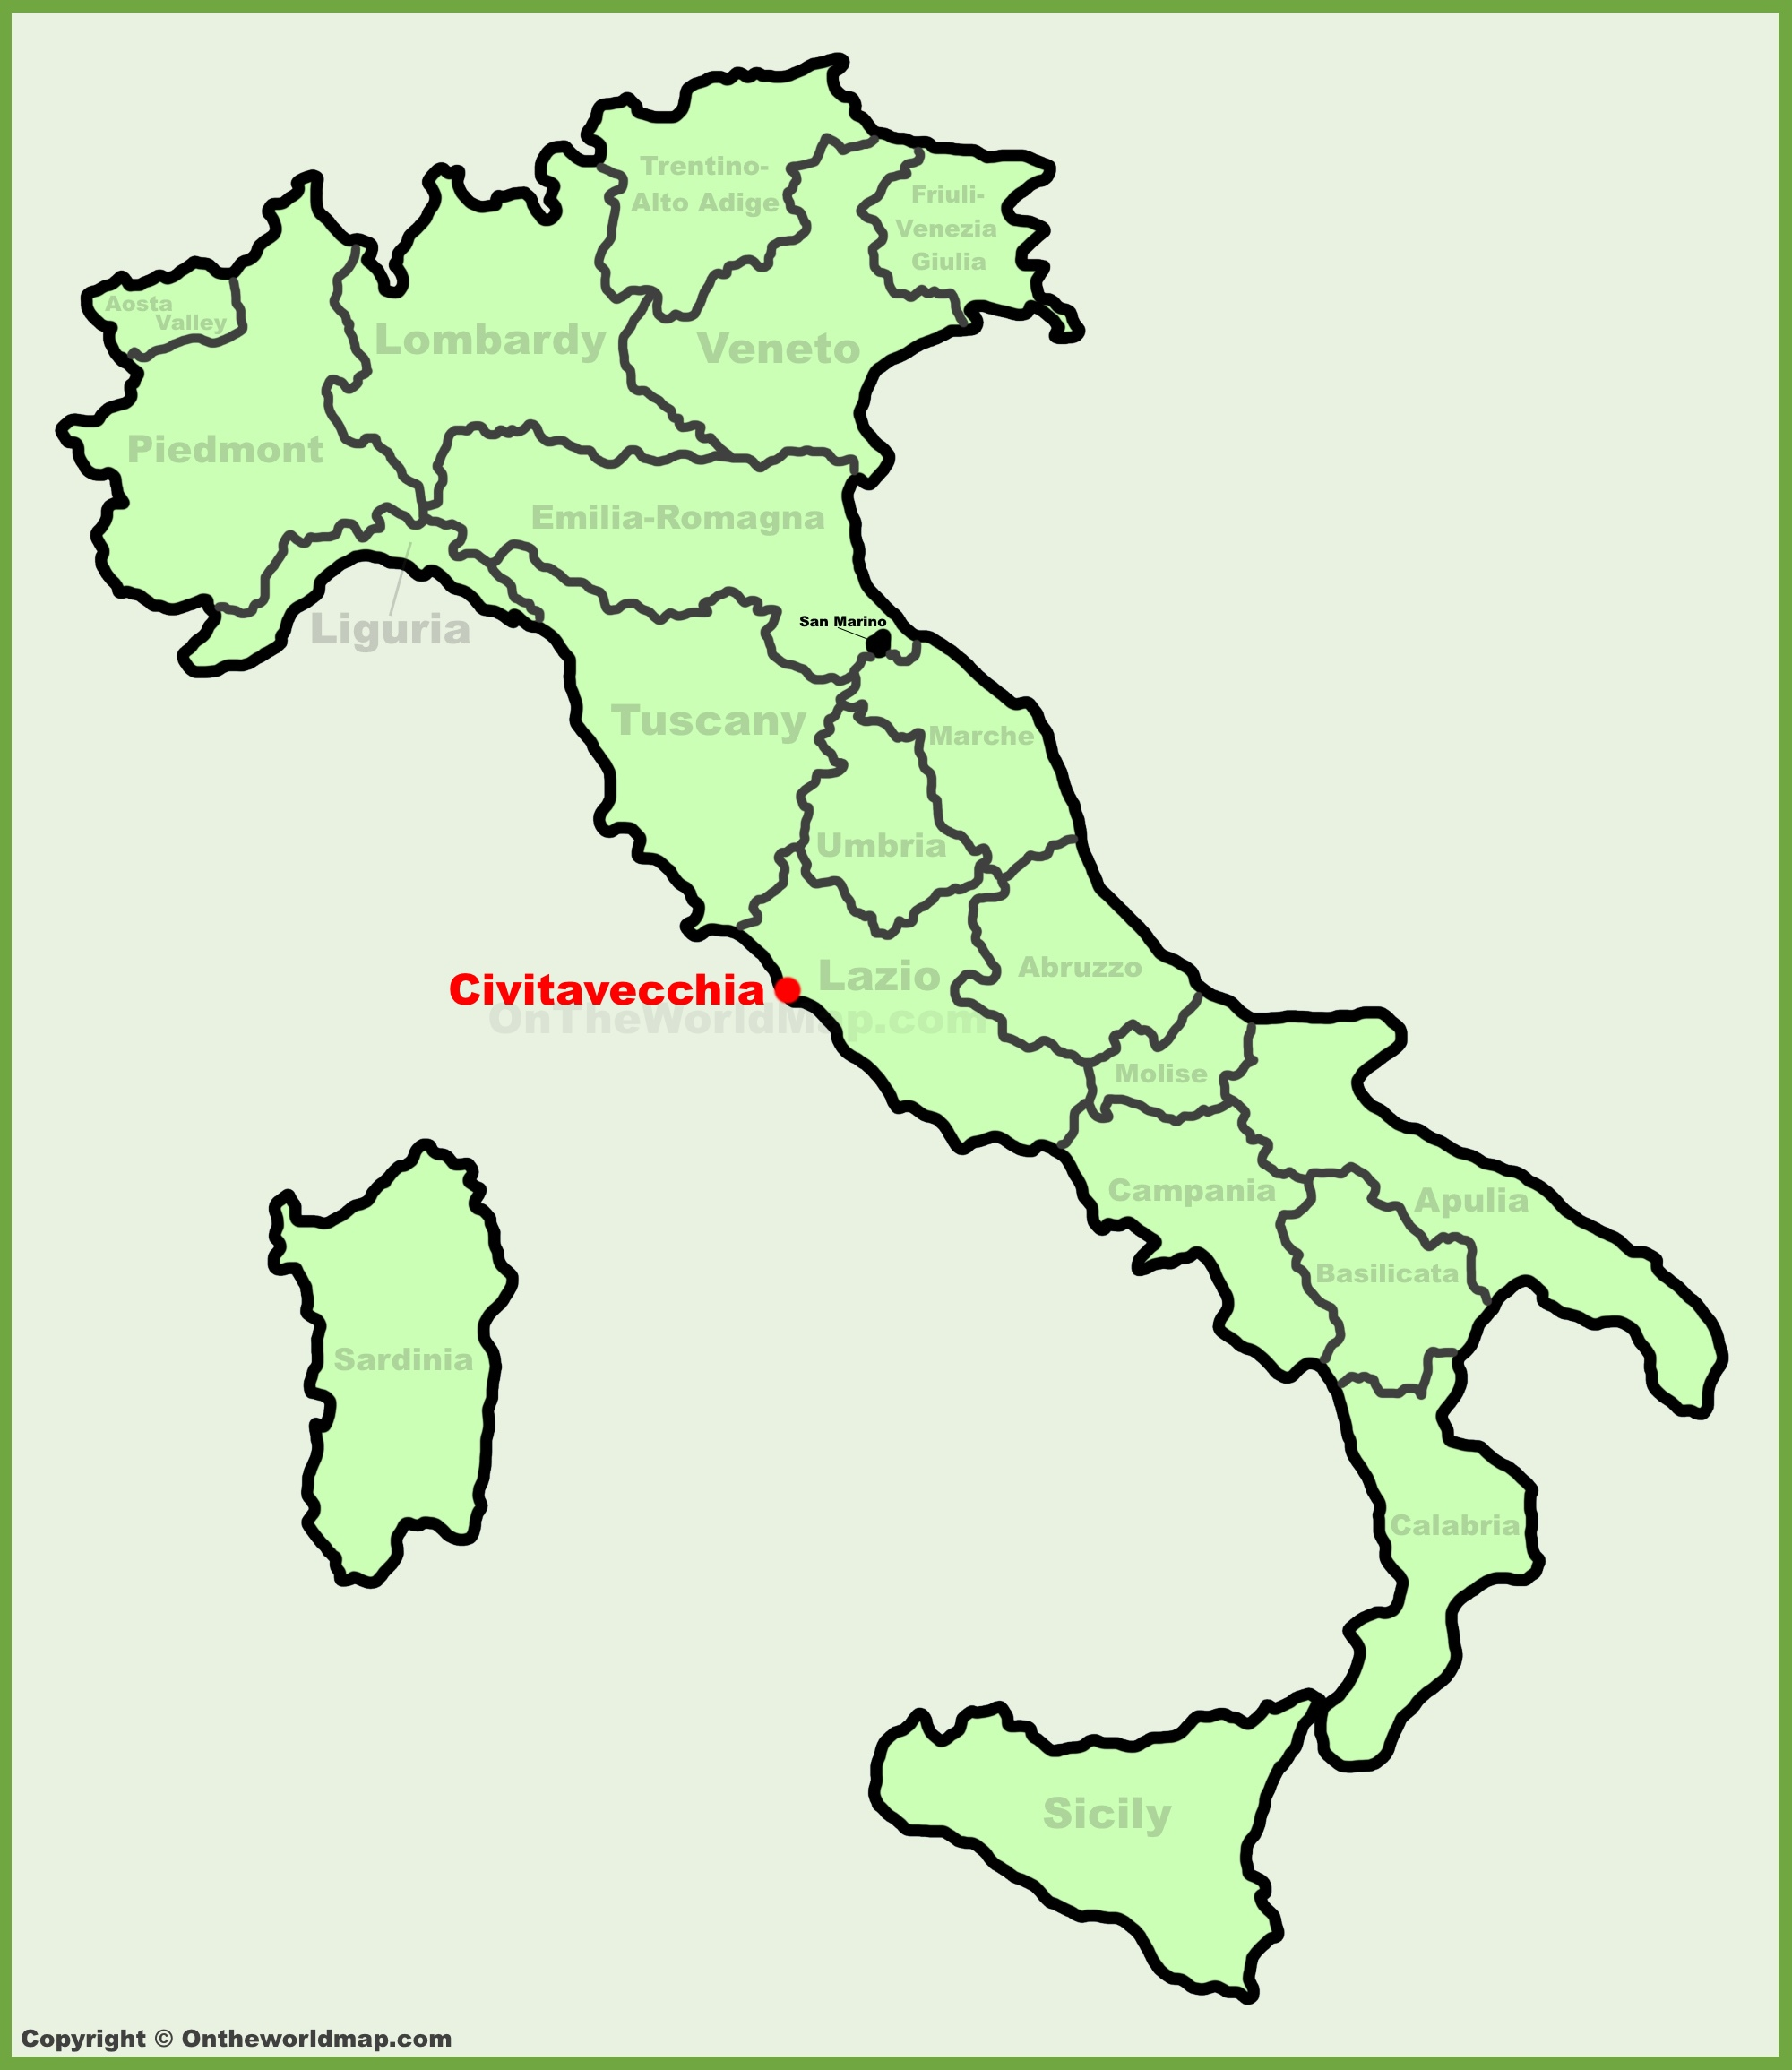 Civitavecchia location on the Italy map